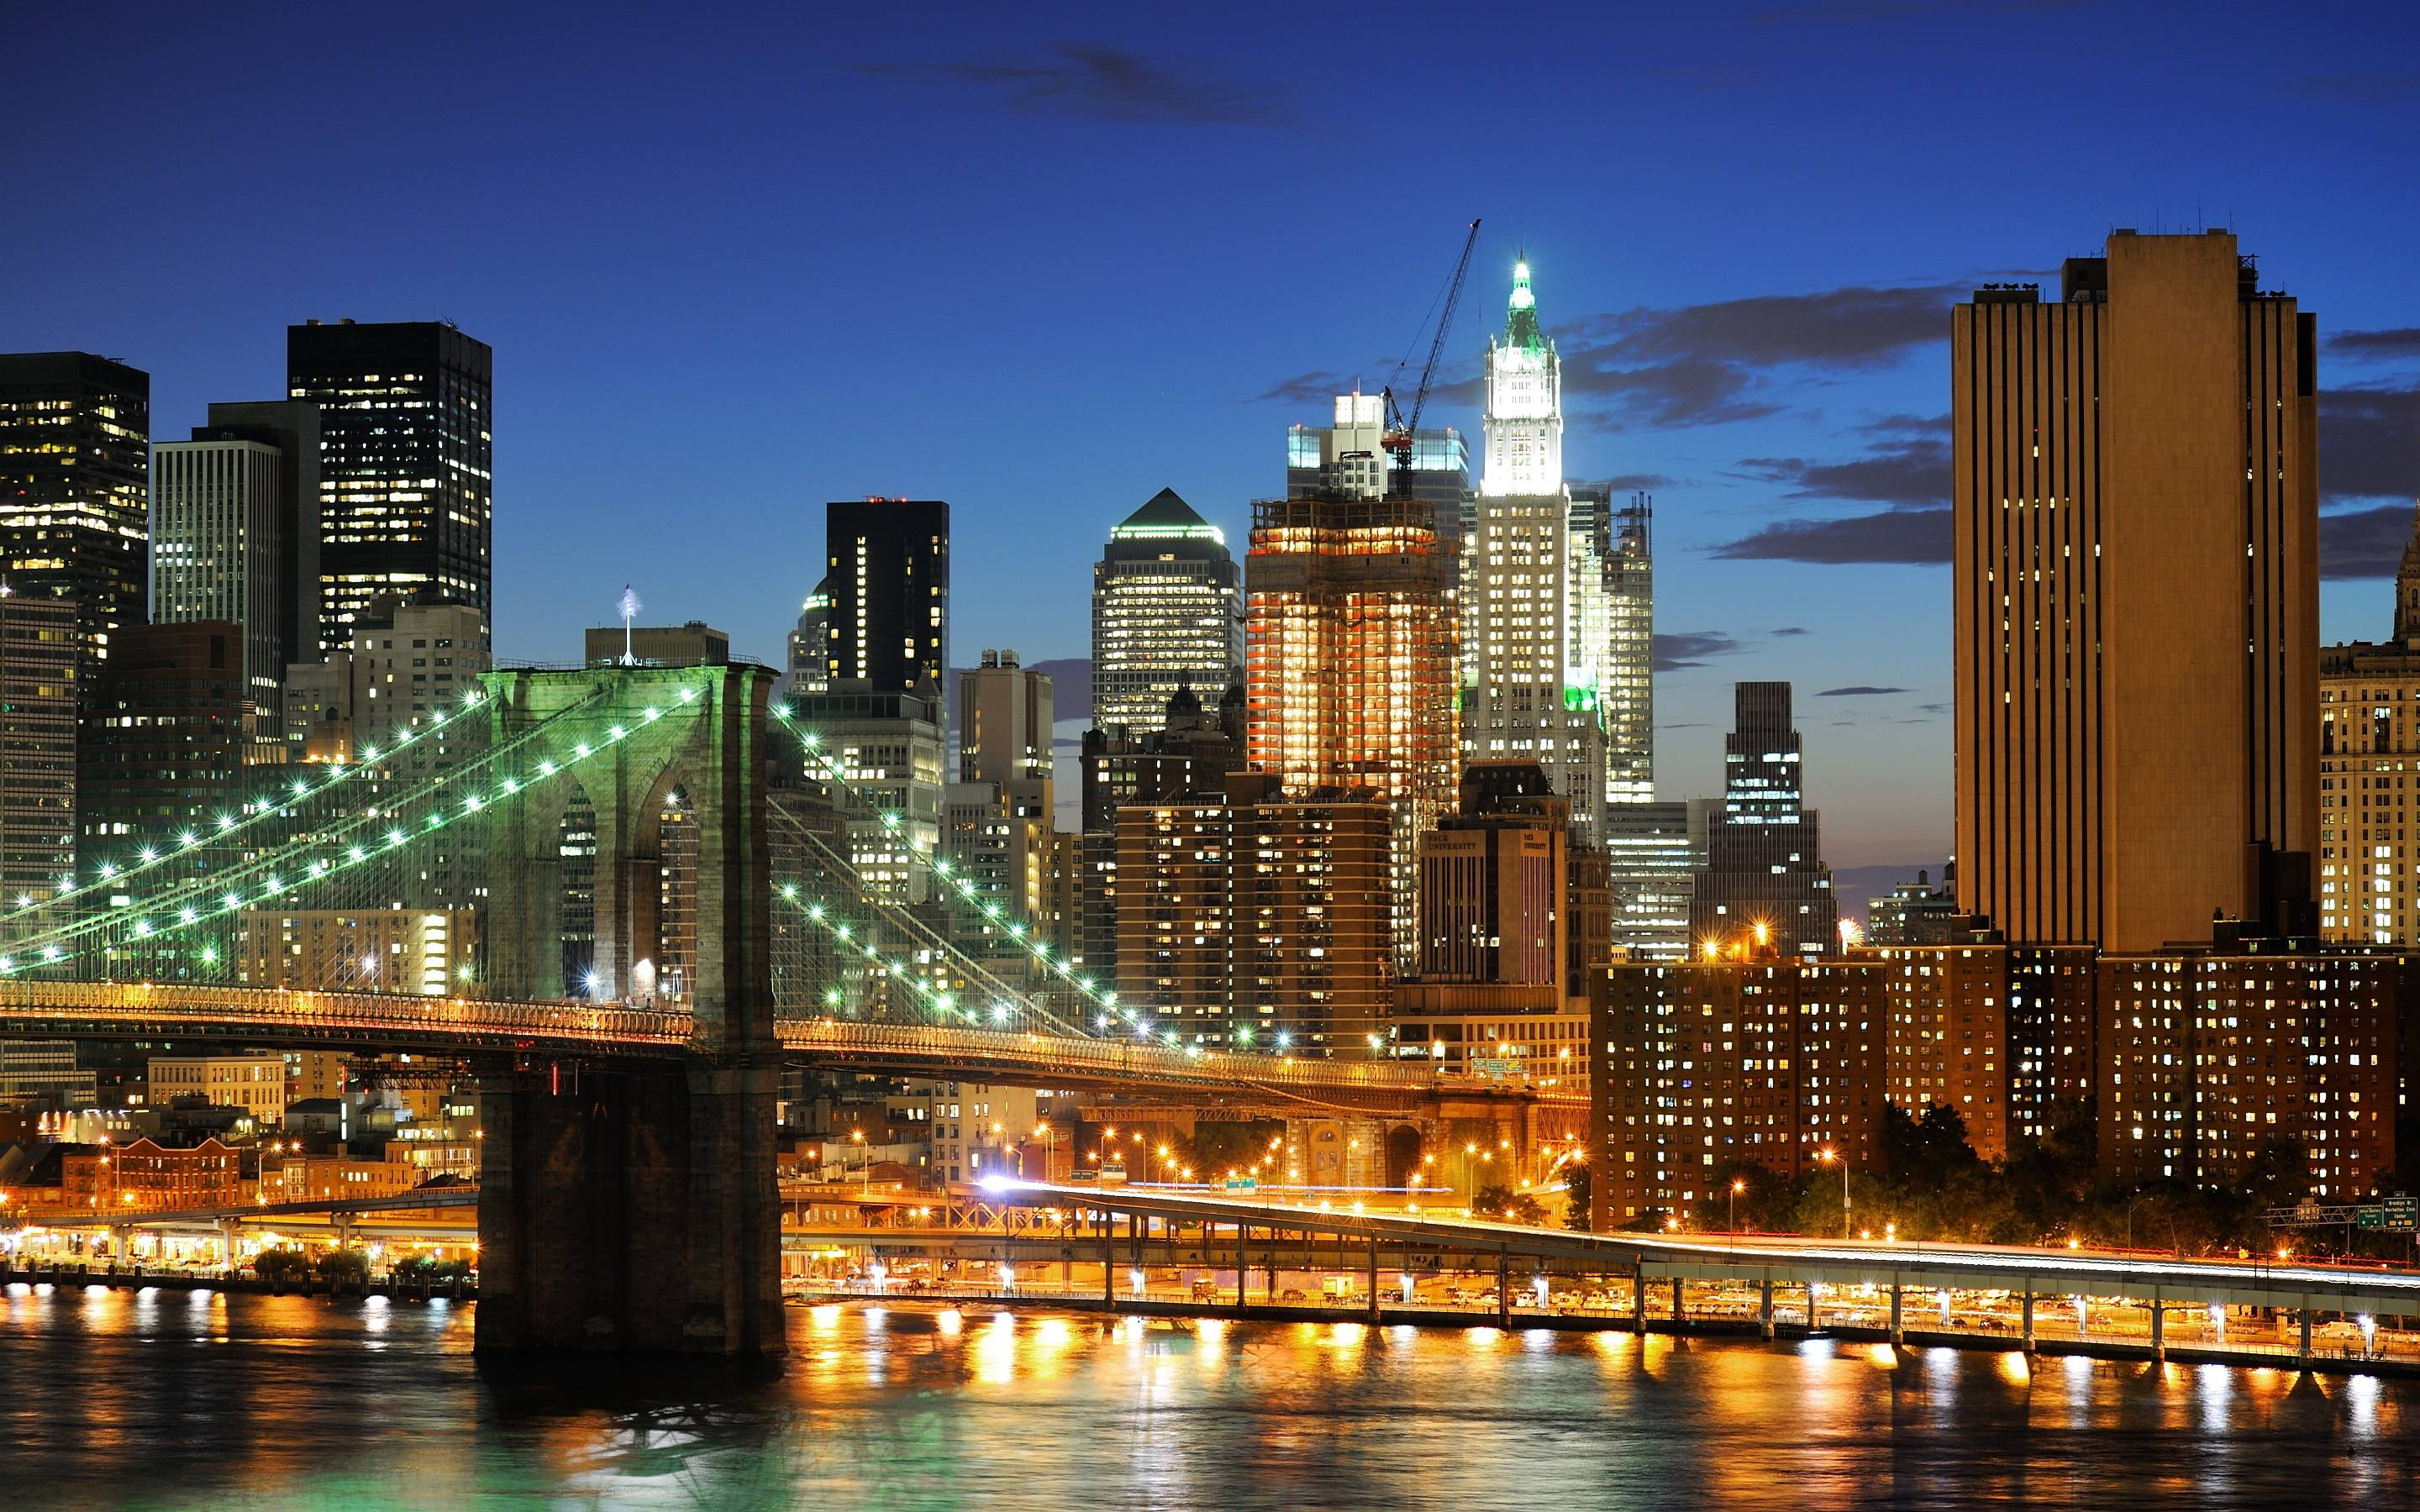 New York City Night Image HD Wallpapers